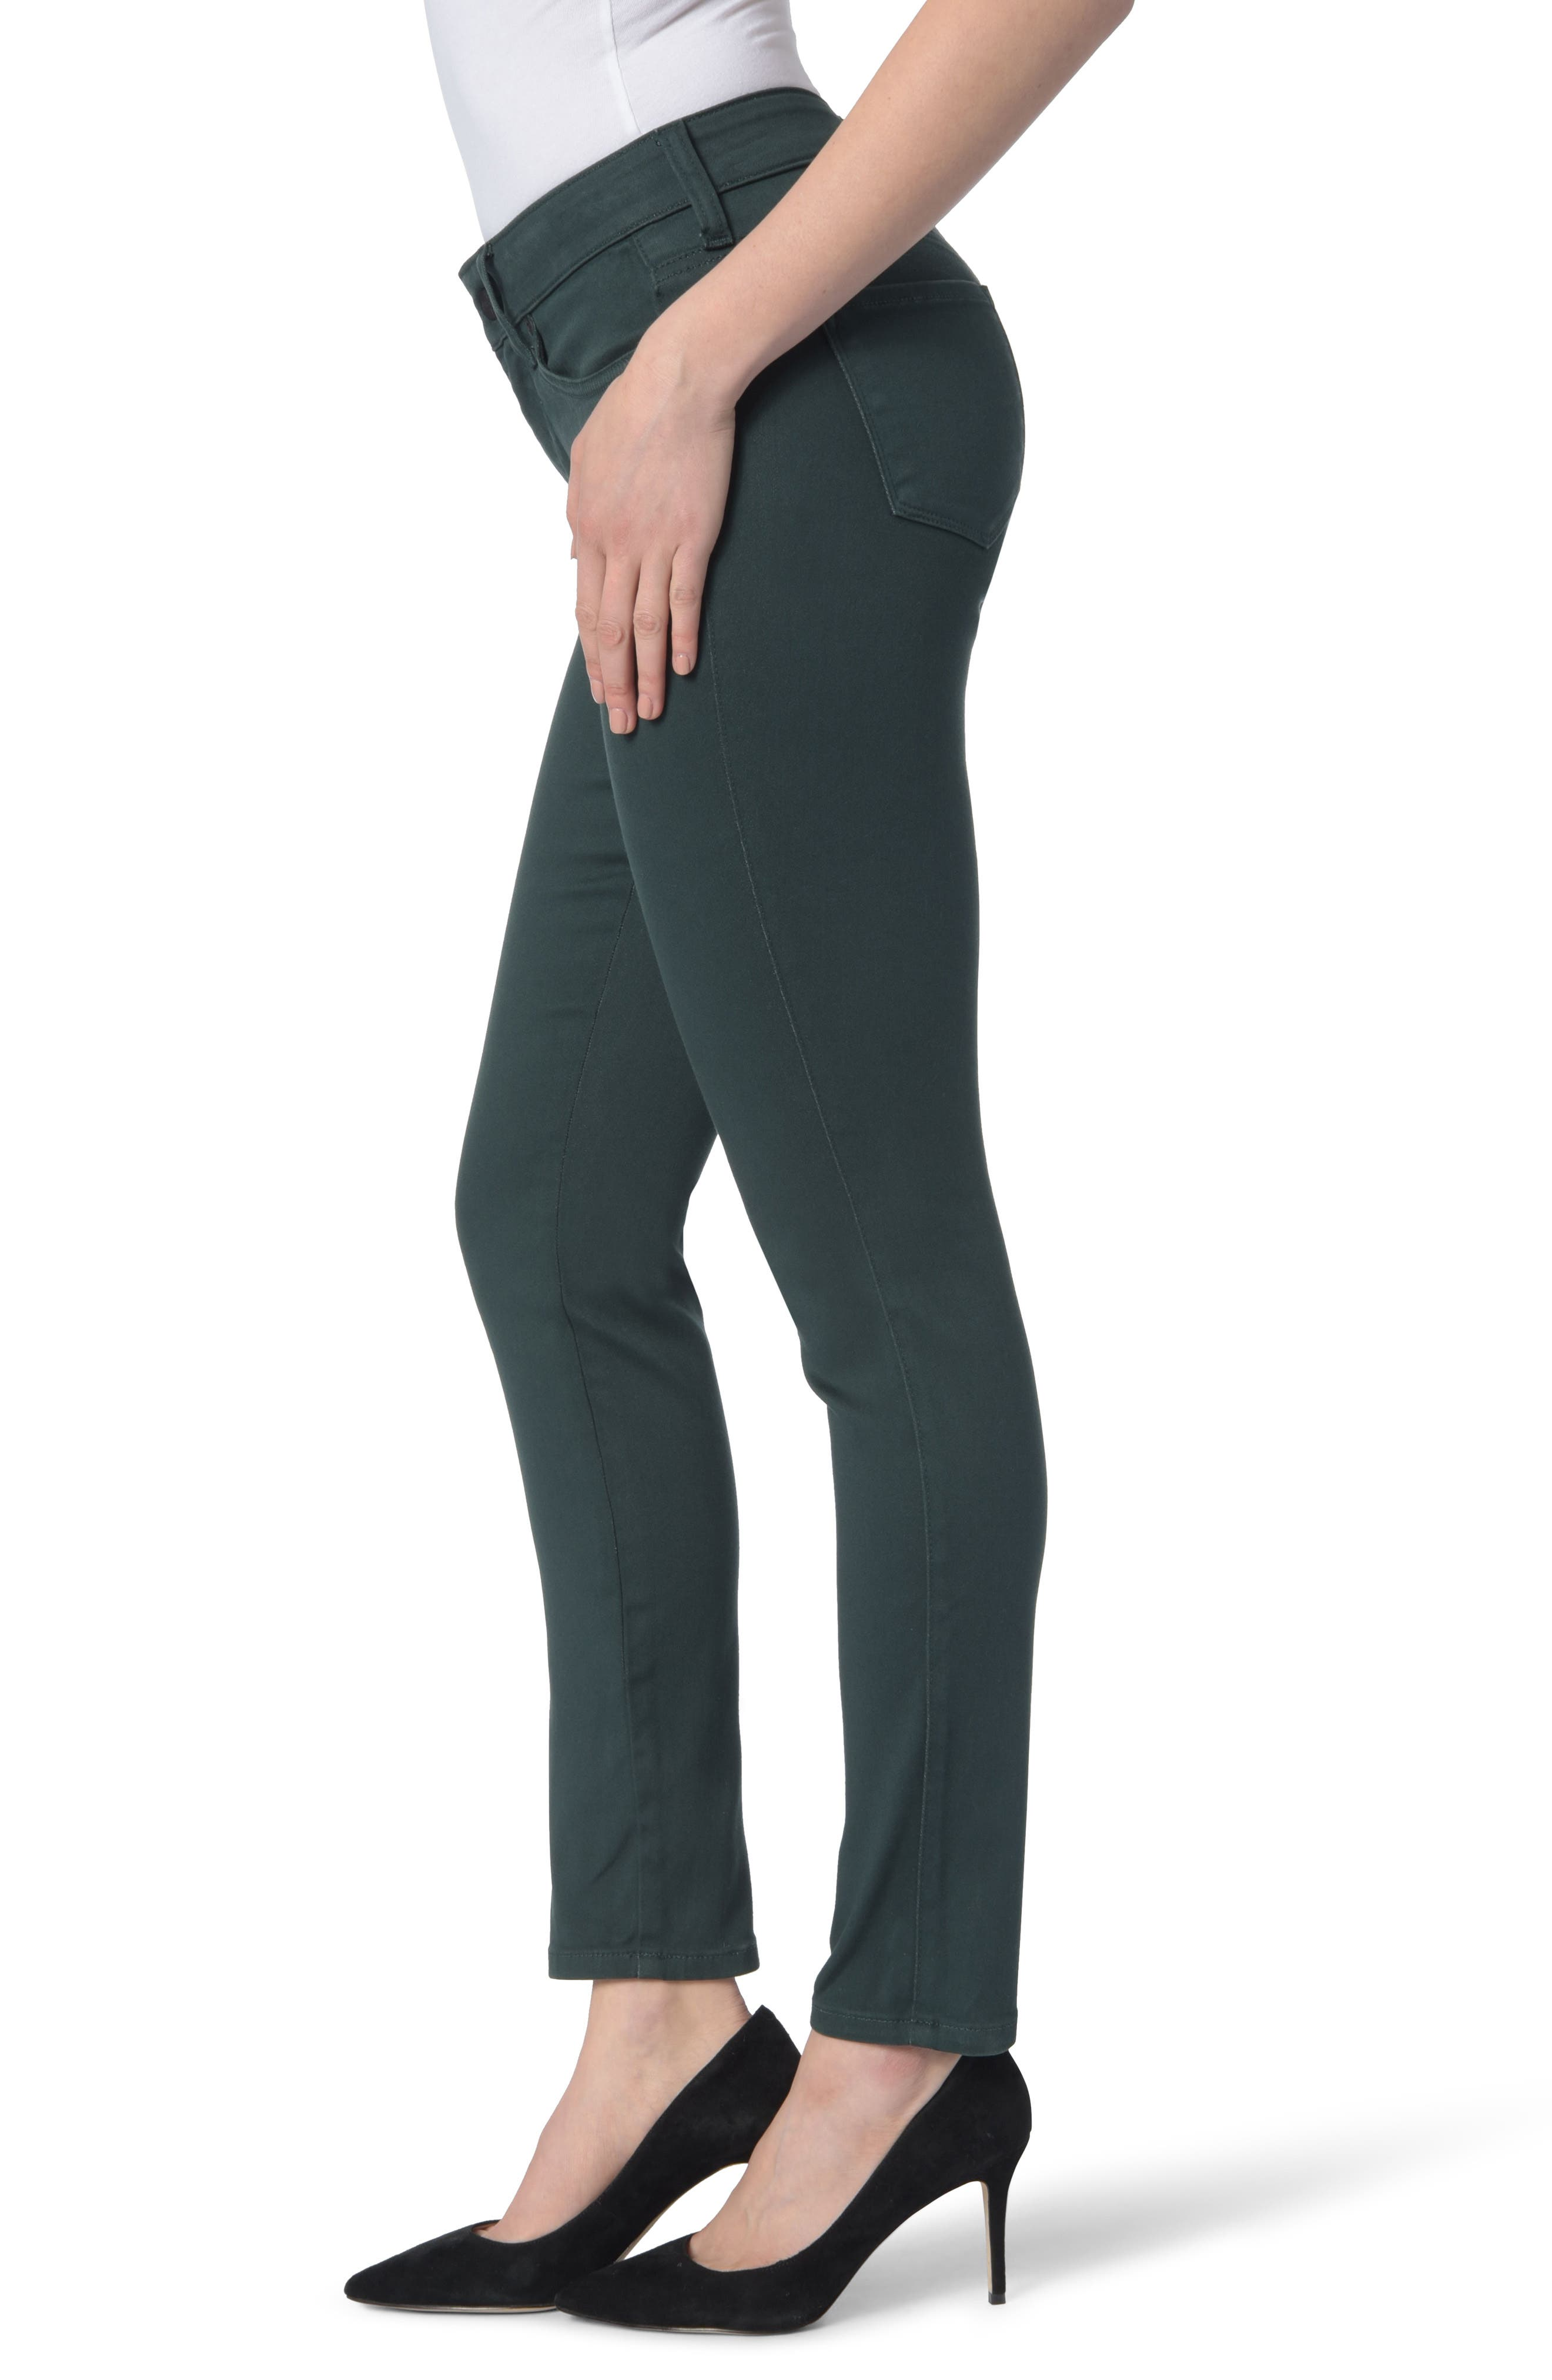 Ami High Waist Colored Stretch Skinny Jeans,                             Alternate thumbnail 3, color,                             VERIDIAN